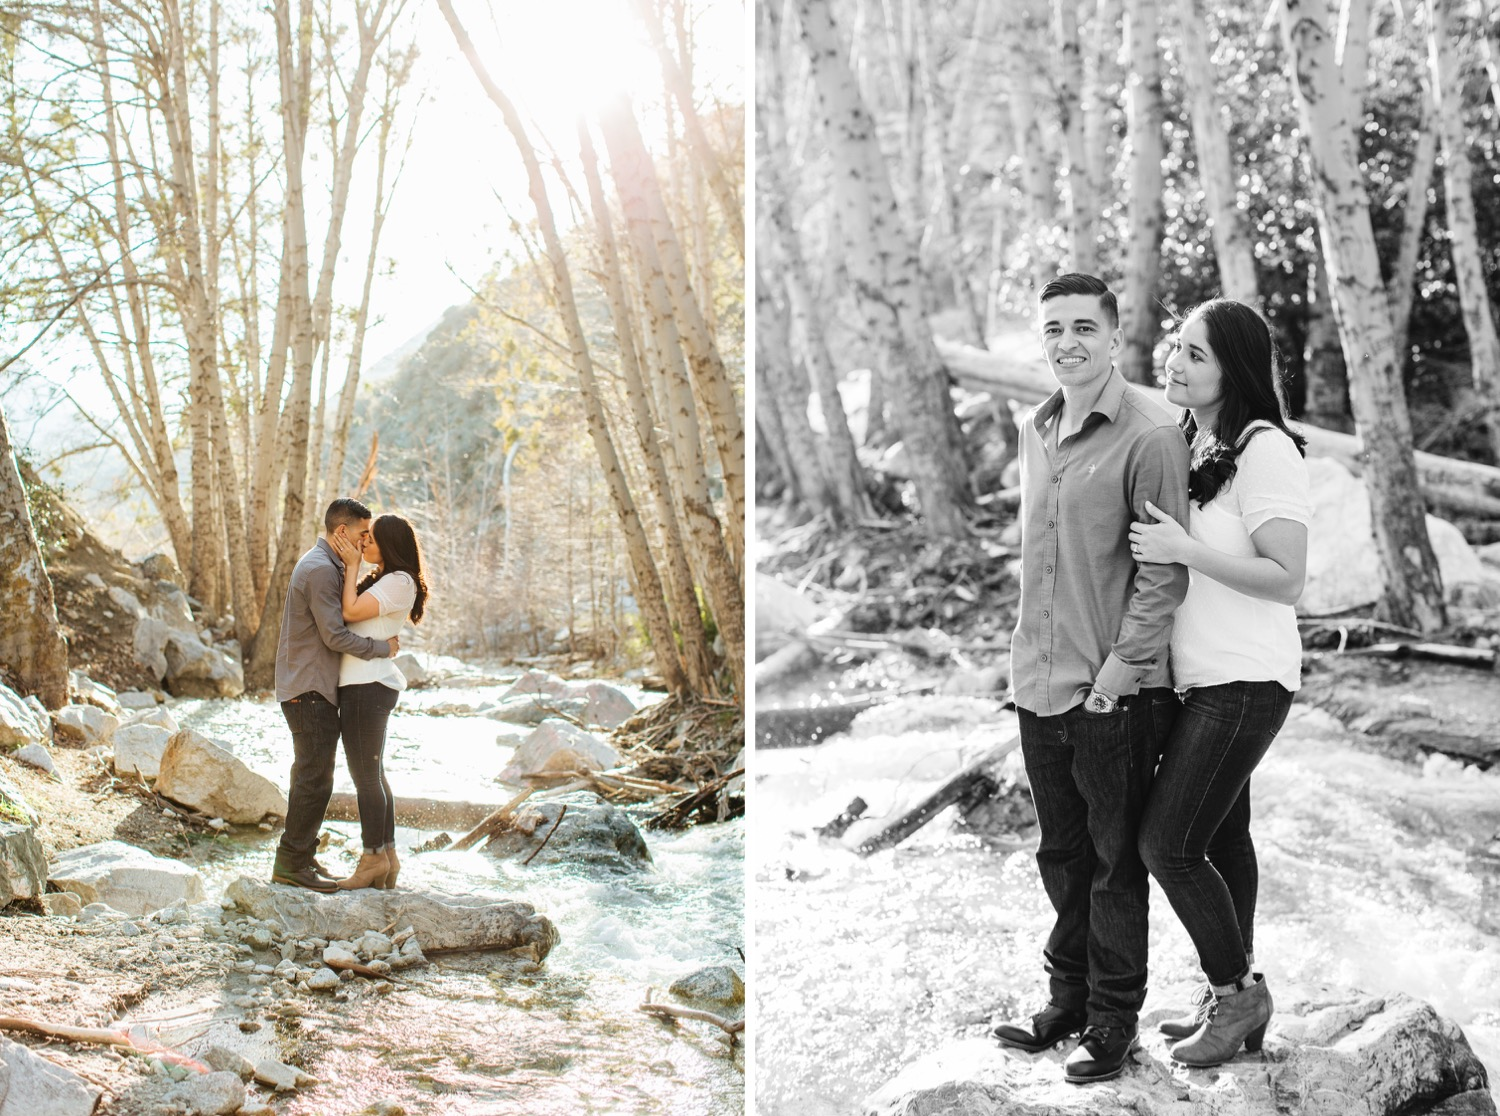 Outdoorsy Adventure Engagement Session - https://brittneyhannonphotography.com